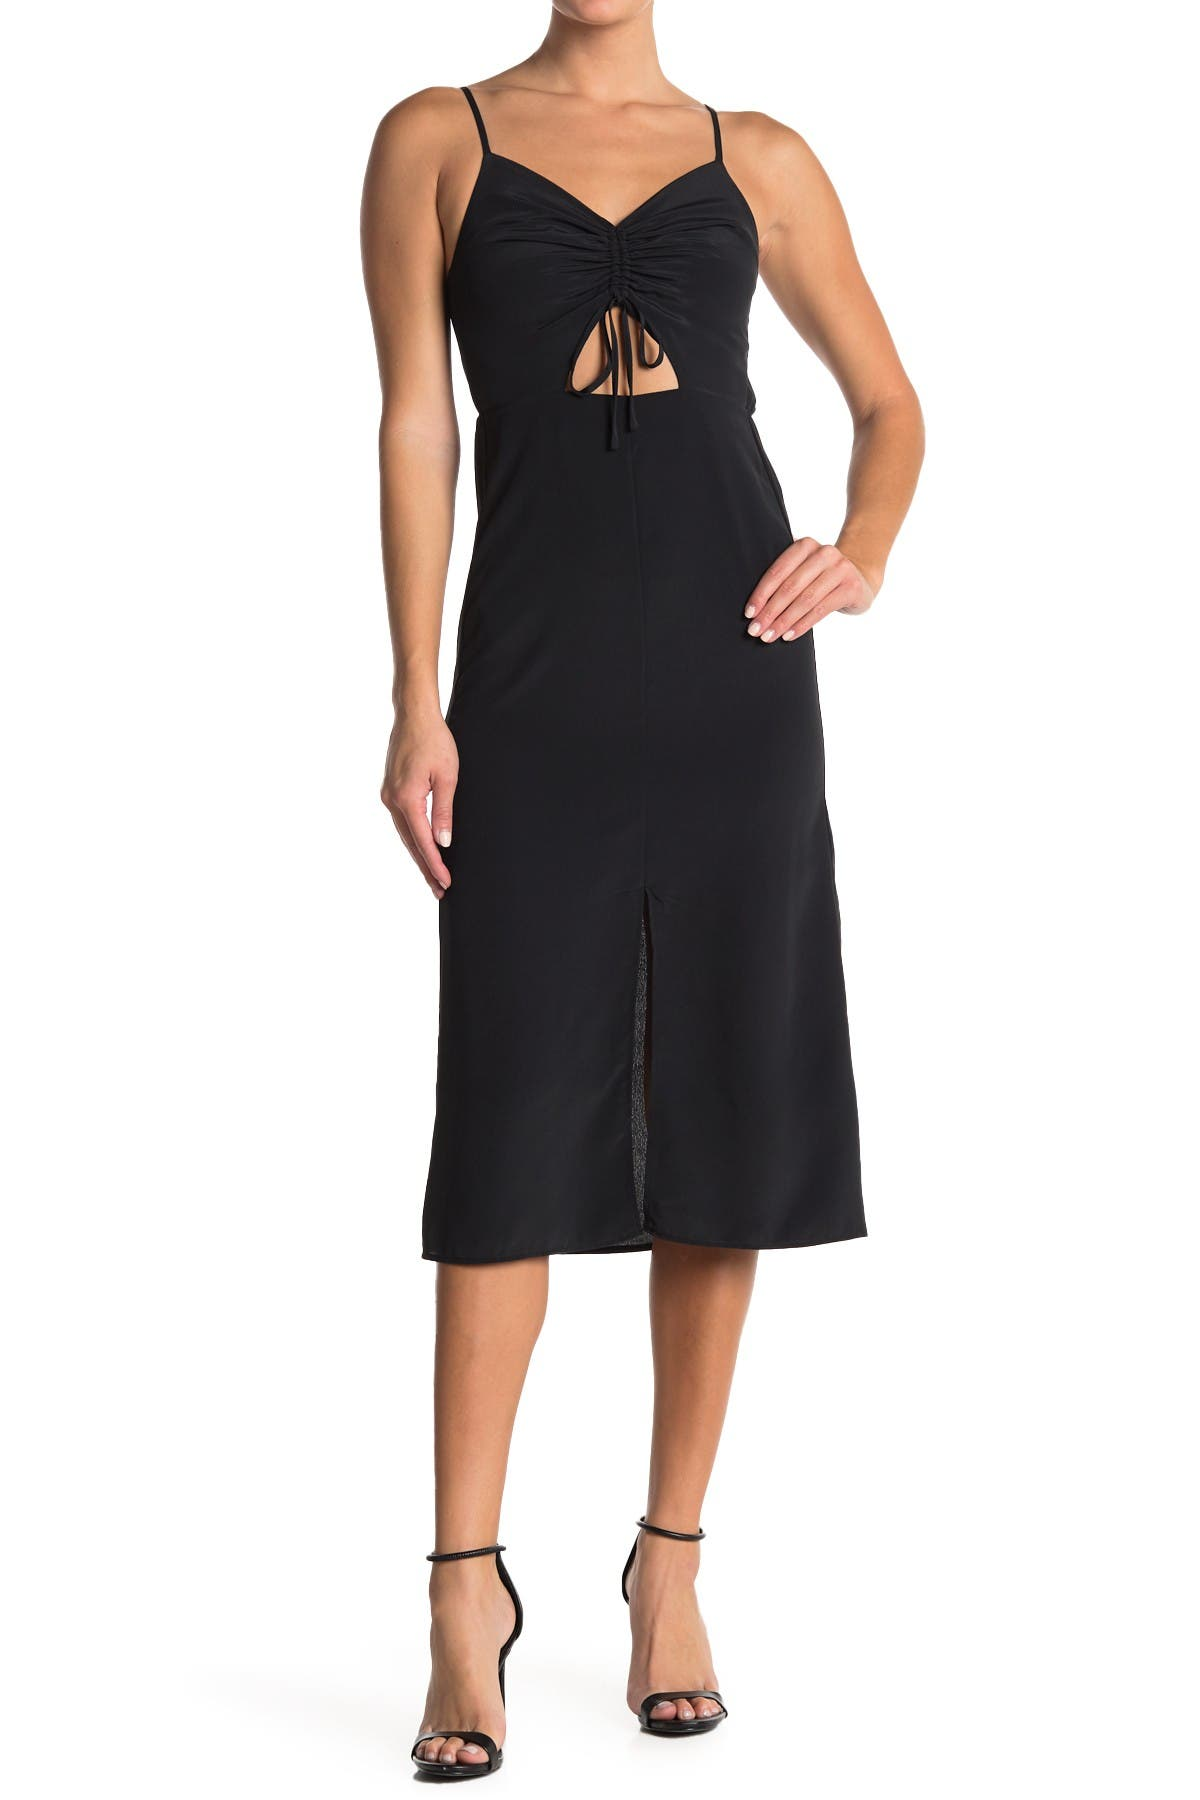 Image of TOPSHOP Molly Front Cutout Ruched Midi Dress